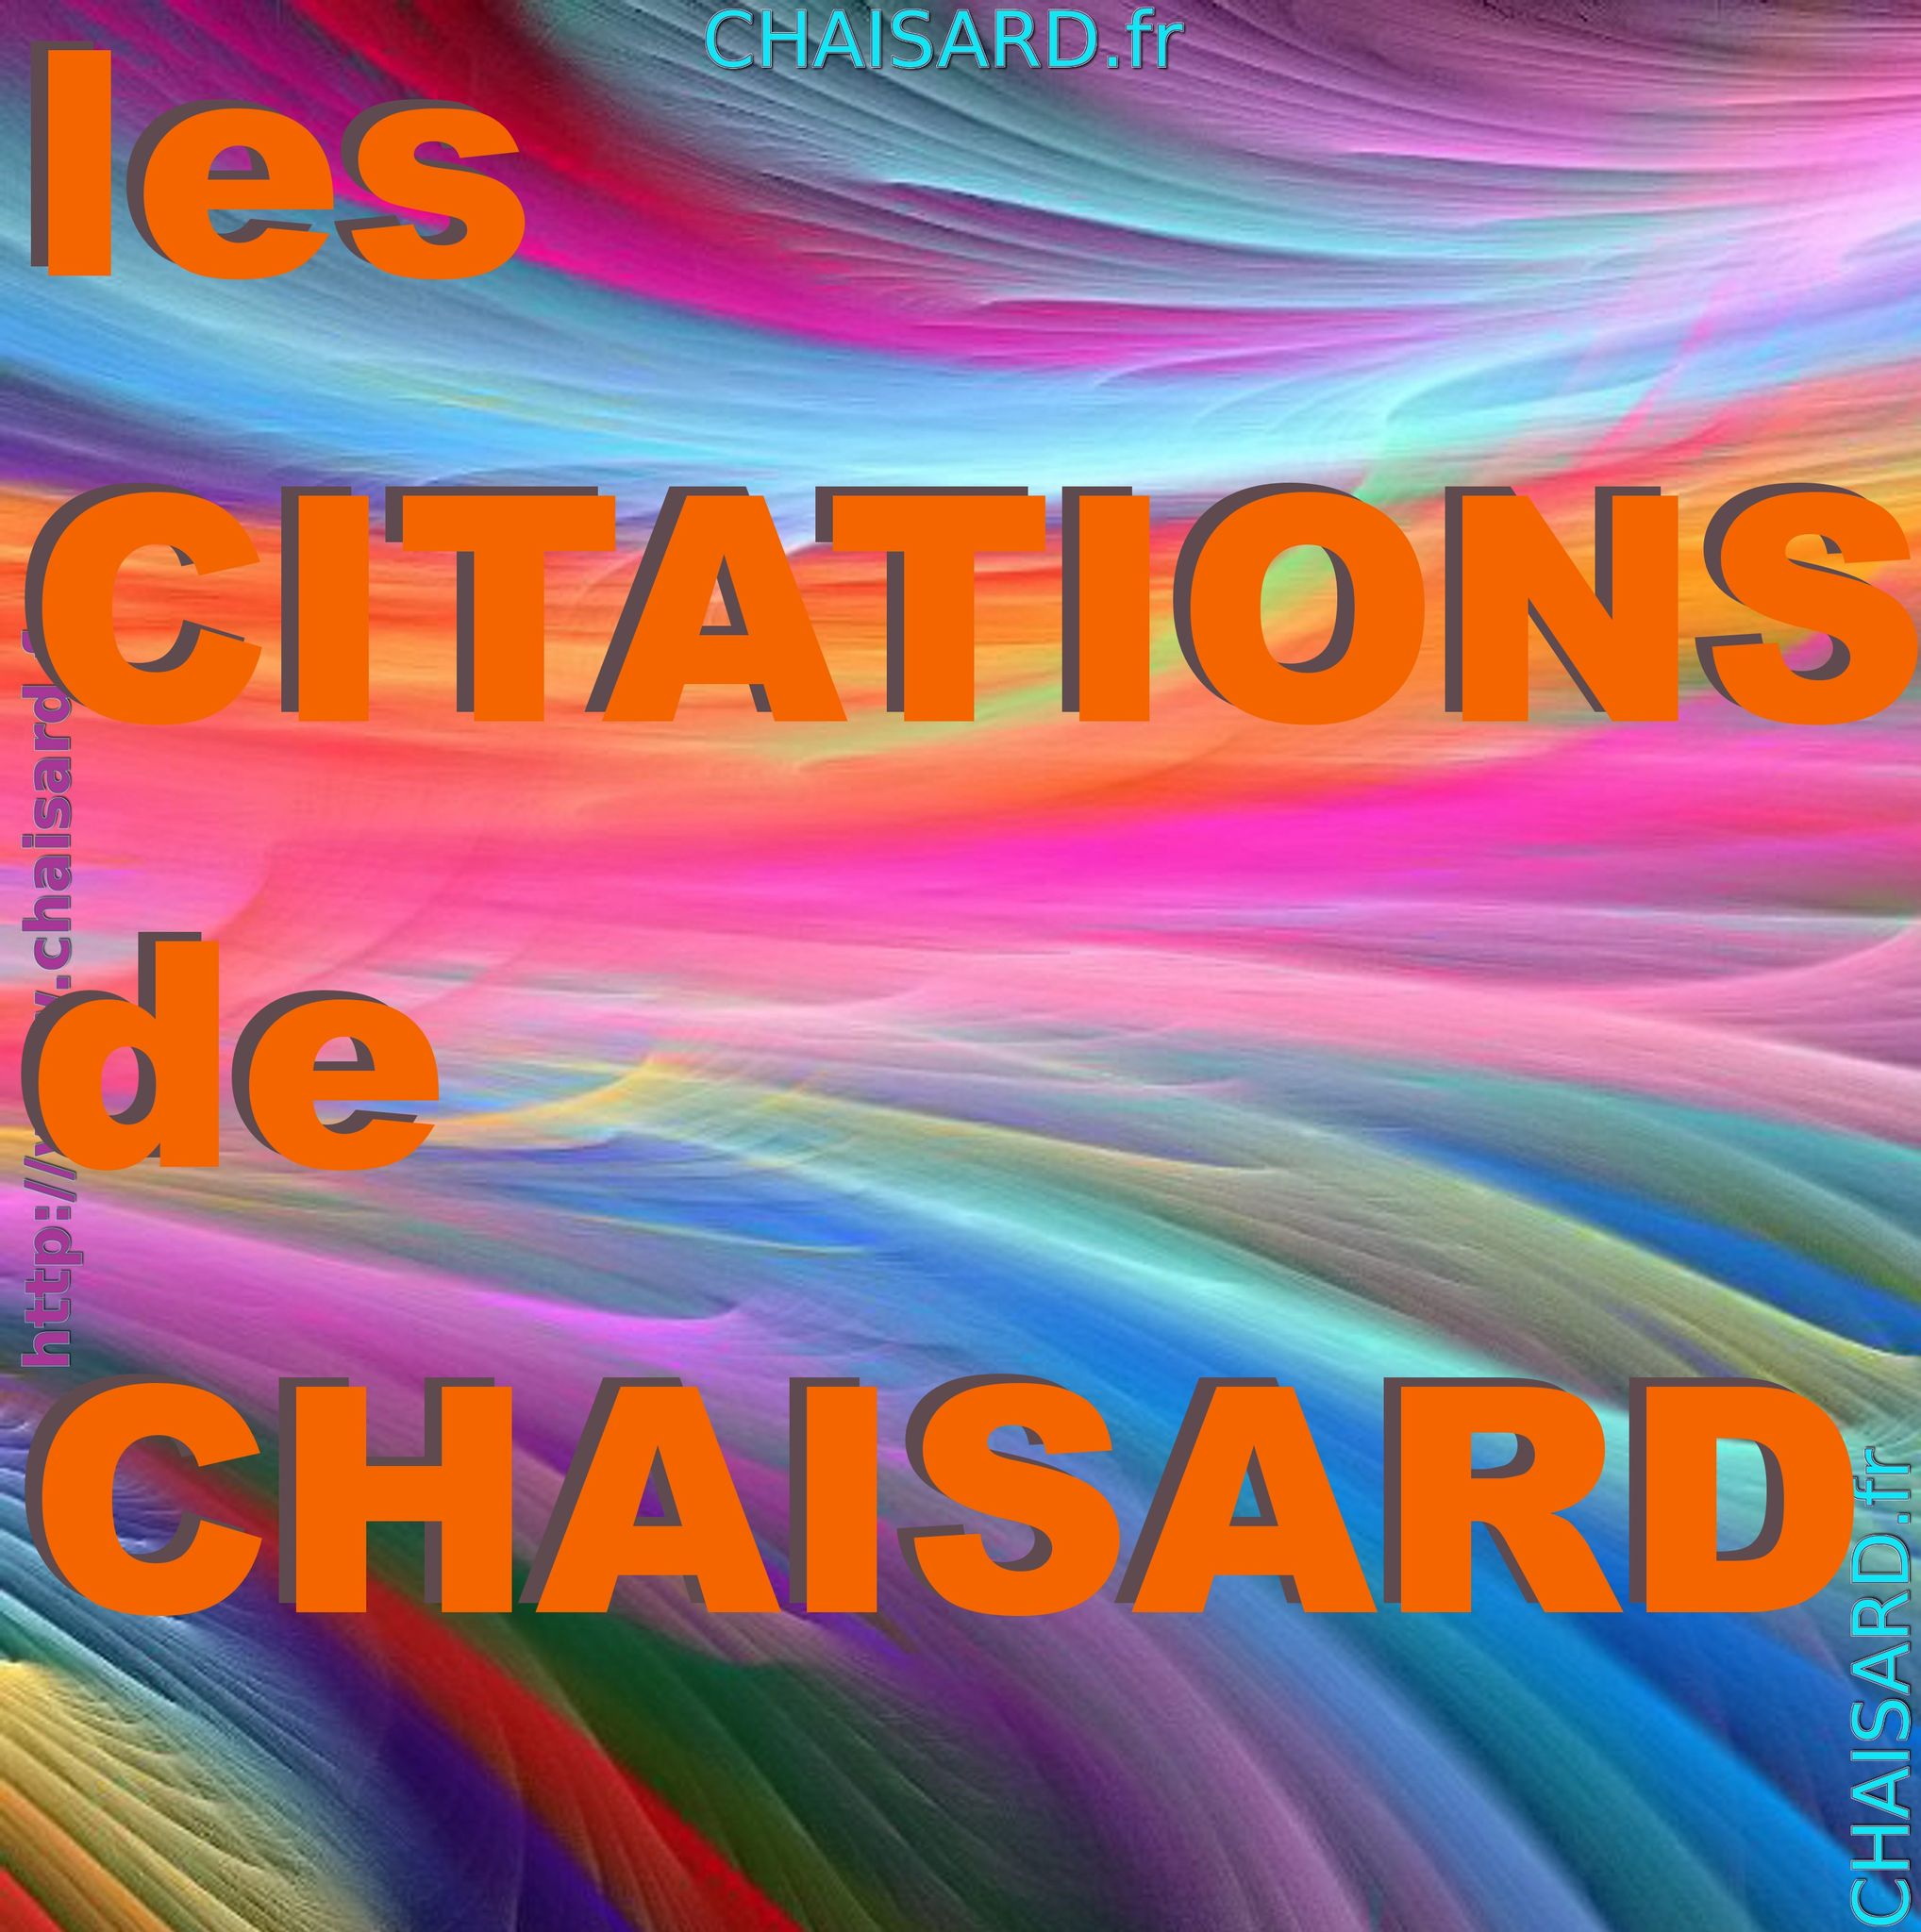 _ 0 CHAISARD CITATION 00Z